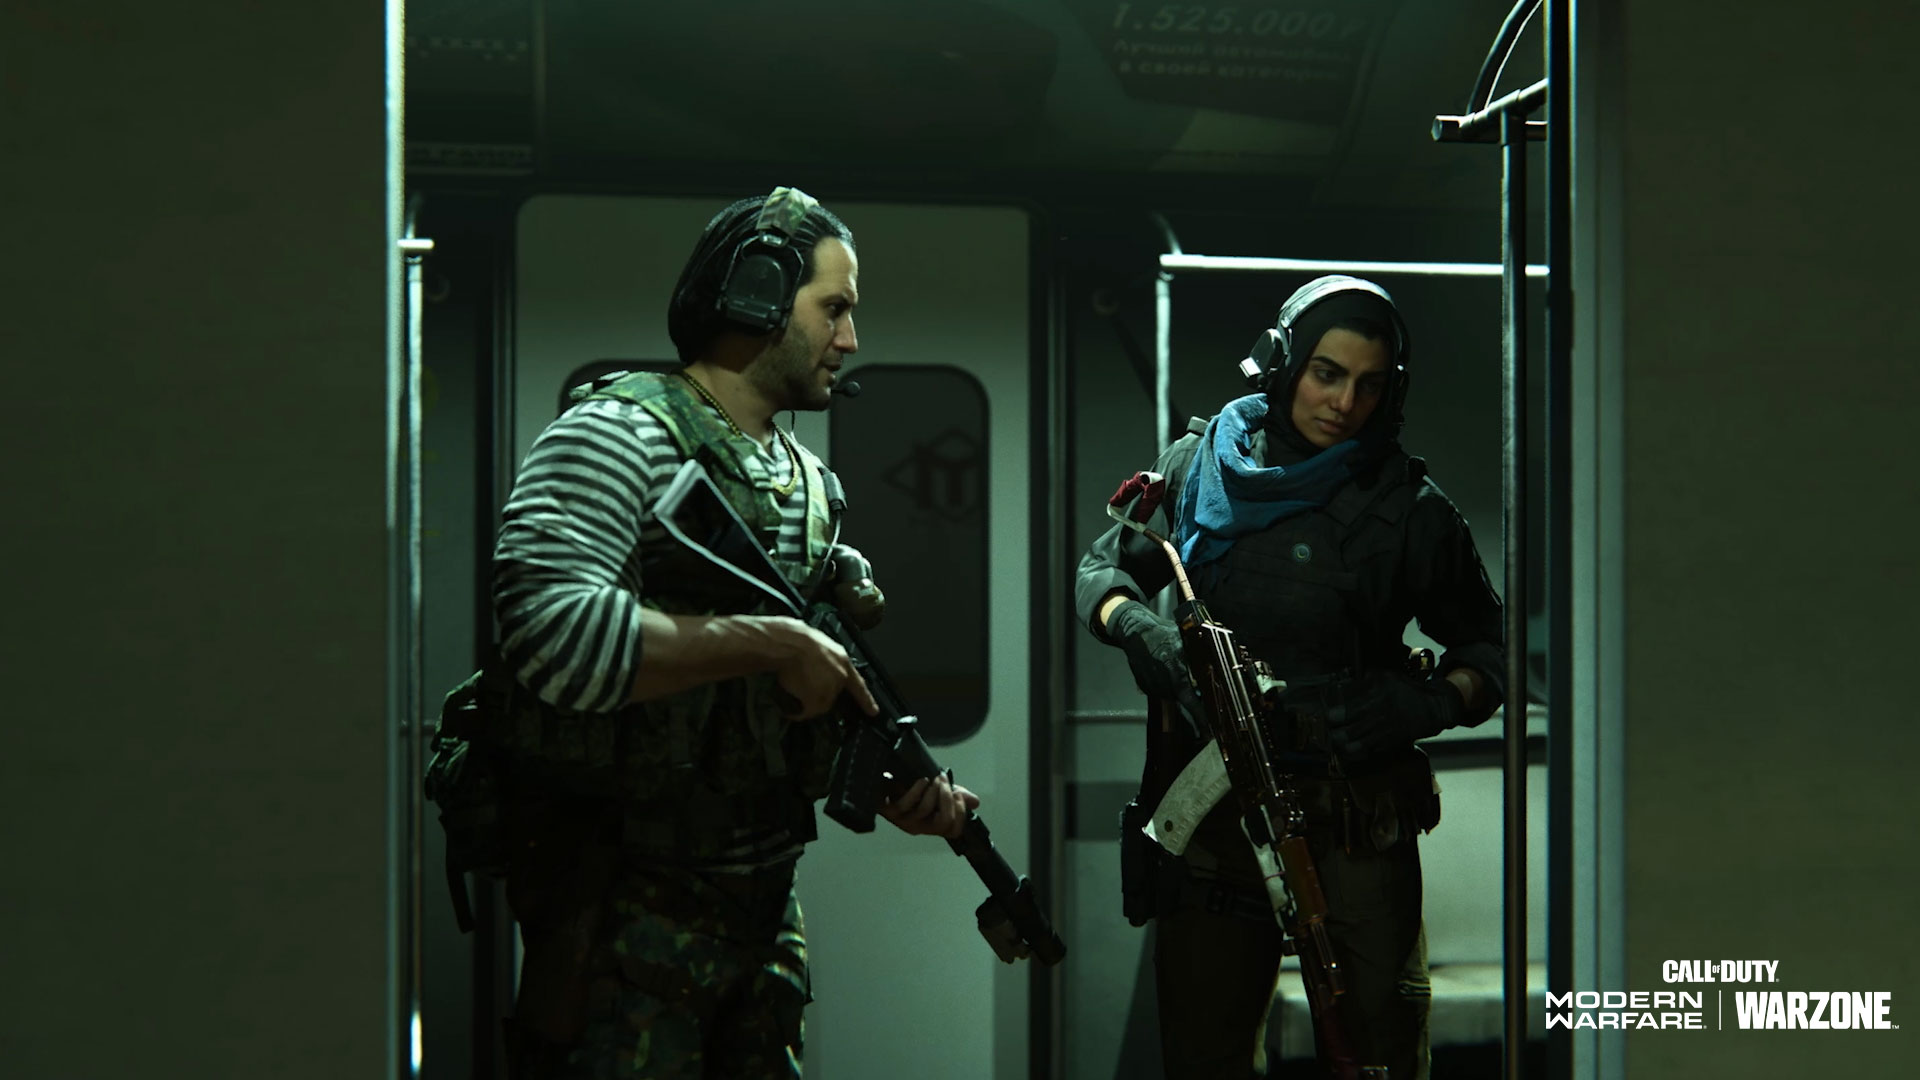 Two operators from Call of Duty: Warzone season 6 boarding a subway car